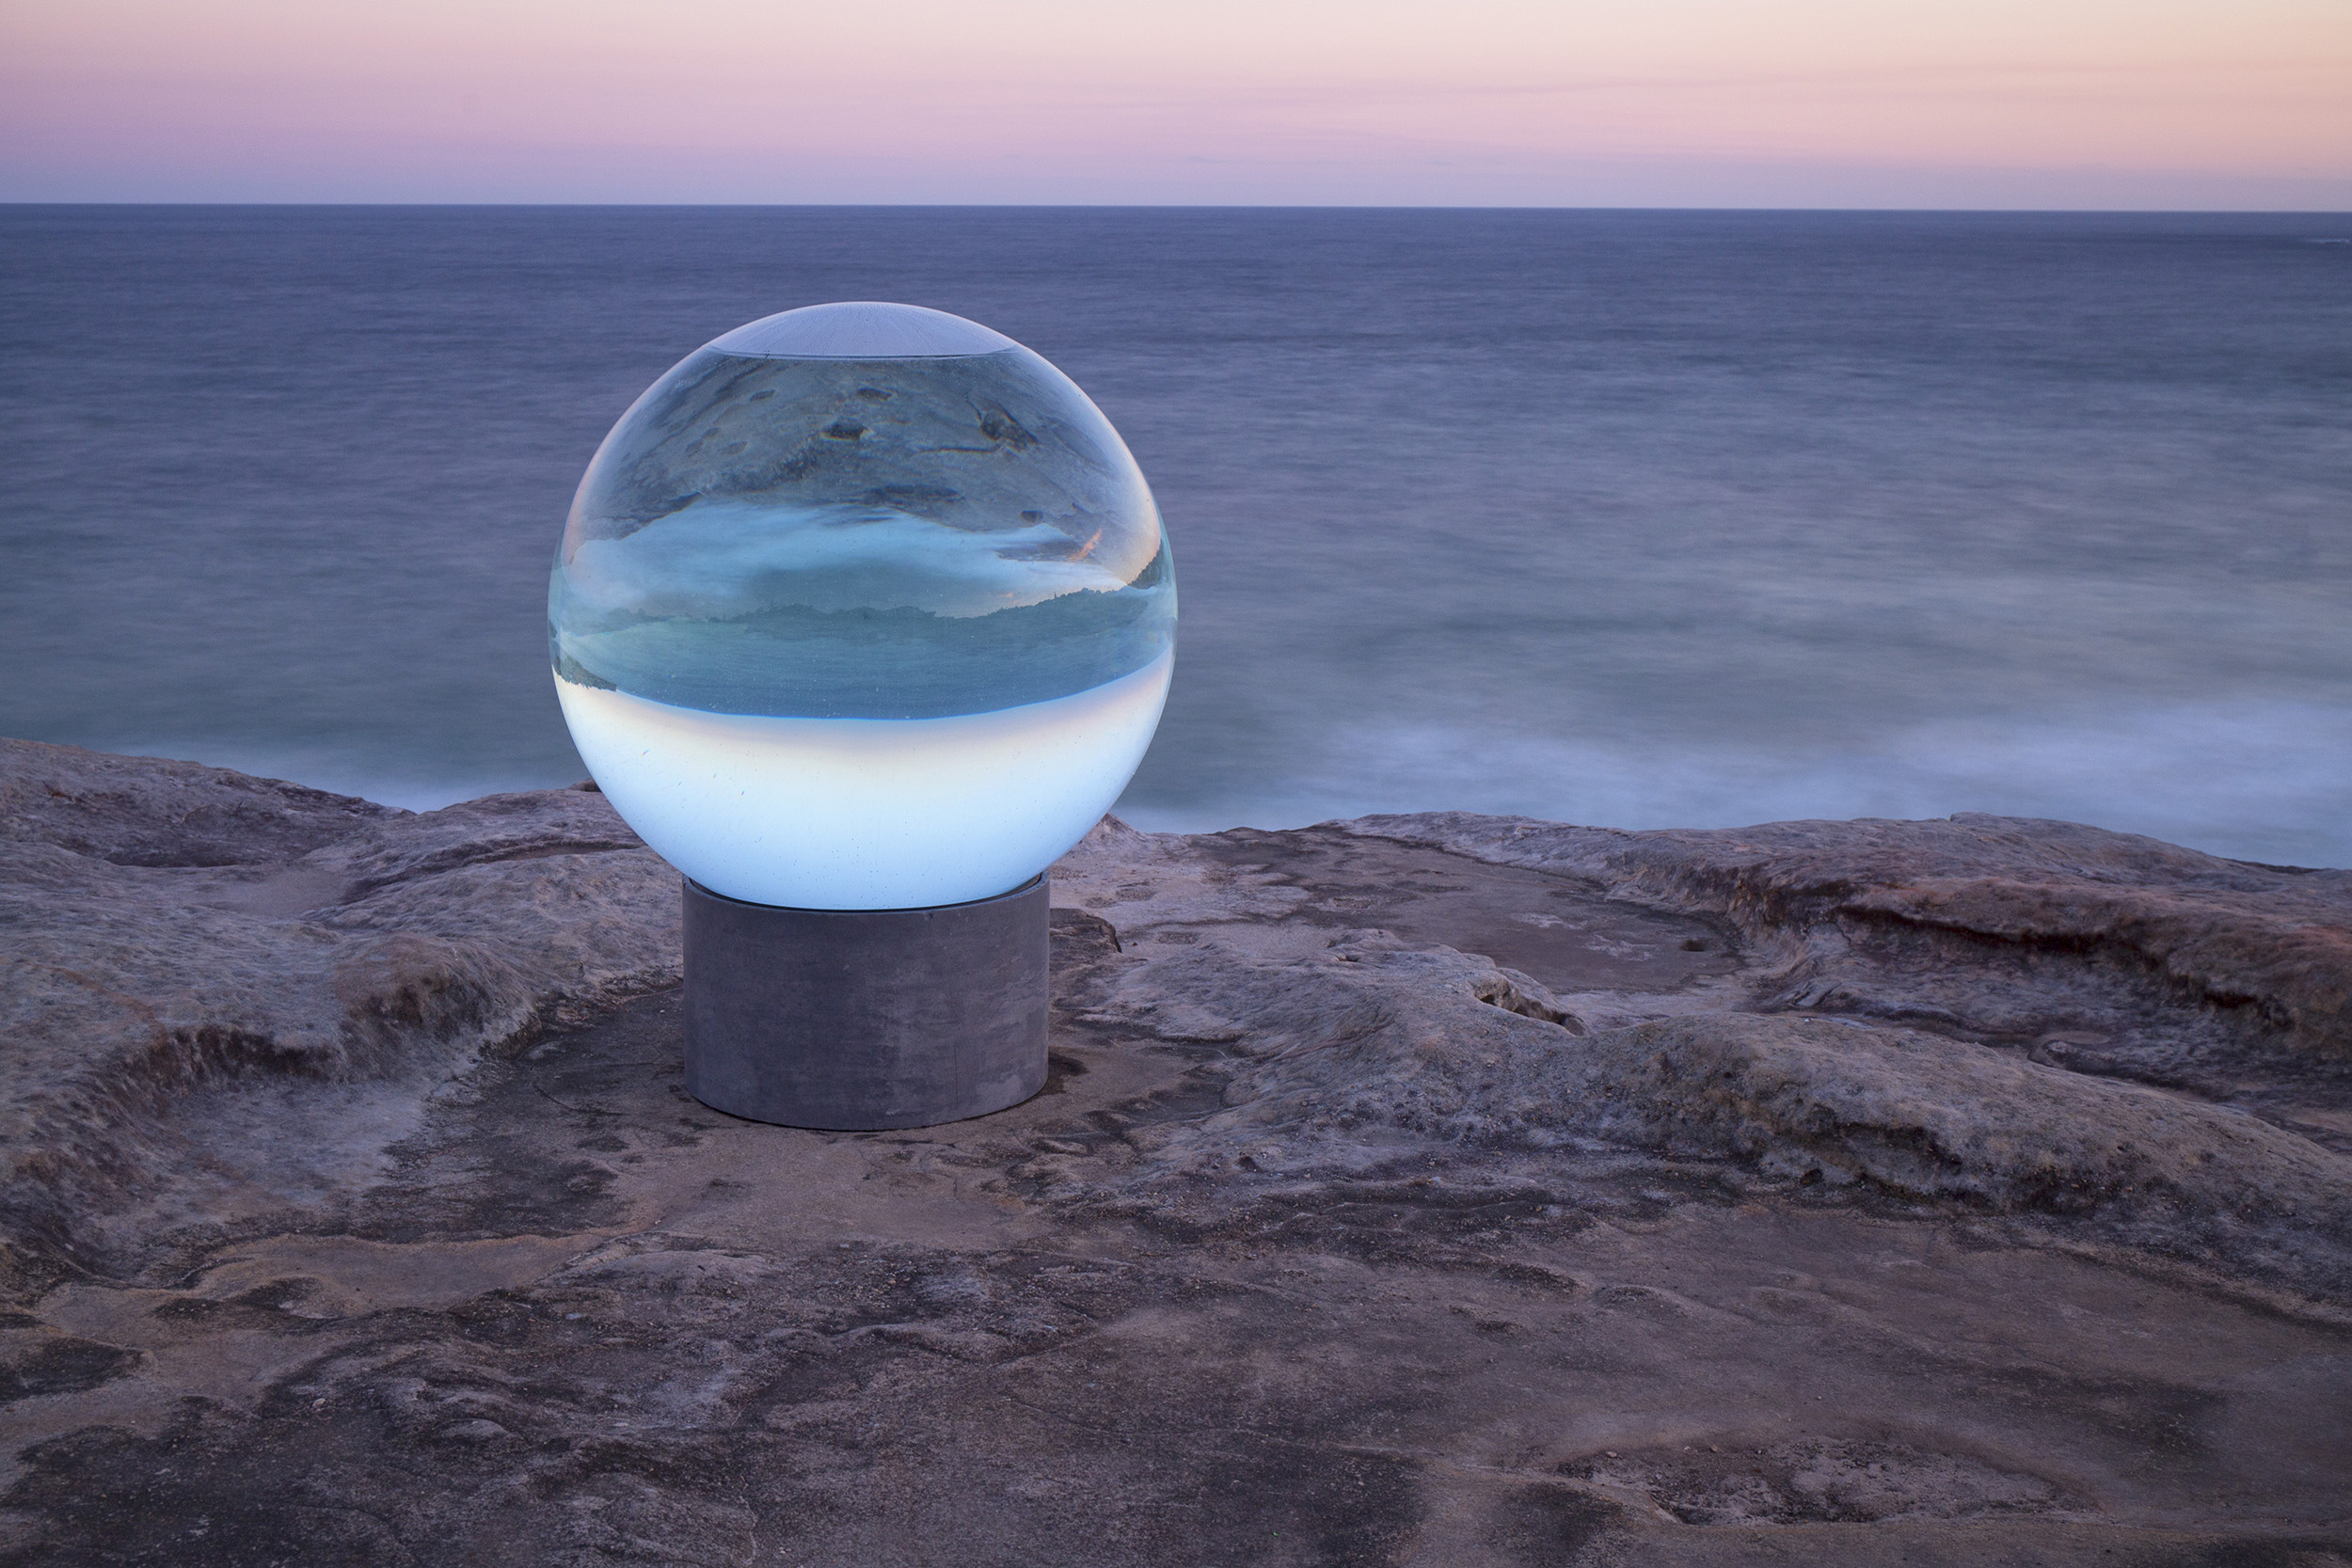 Lucy Humphrey, Horizon, Sculpture by the Sea, Bondi 2013. Photo William Patino